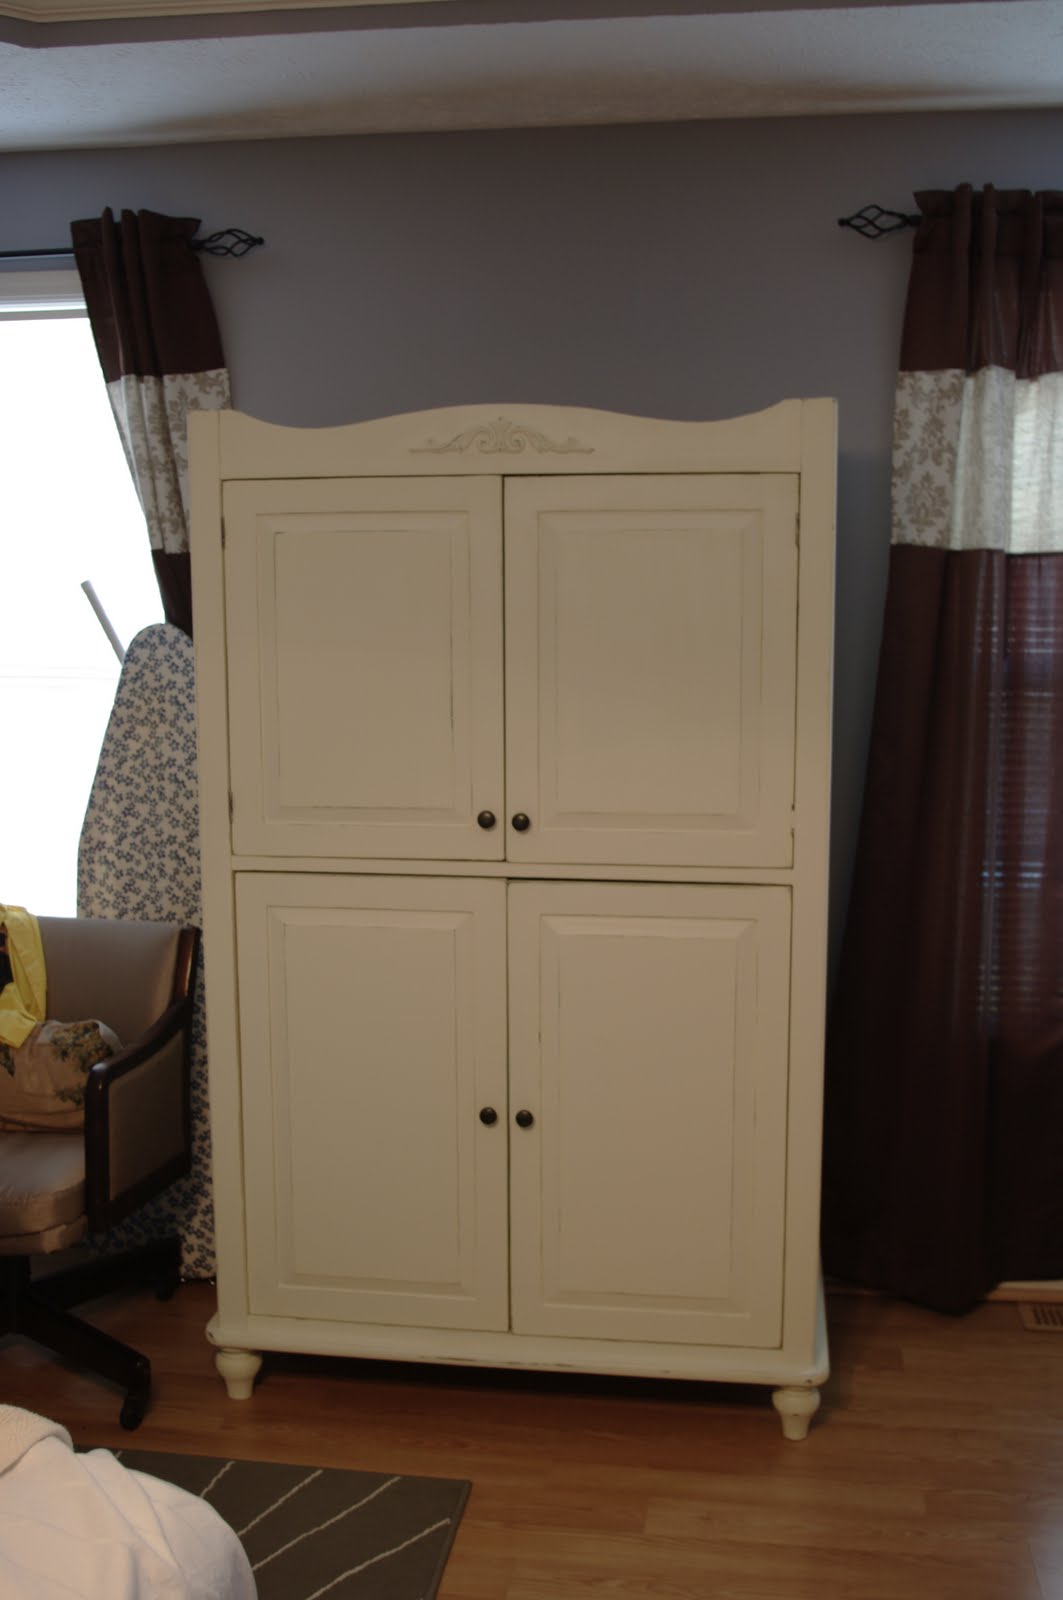 carla 39 s crafty creations sewing armoire part 2. Black Bedroom Furniture Sets. Home Design Ideas